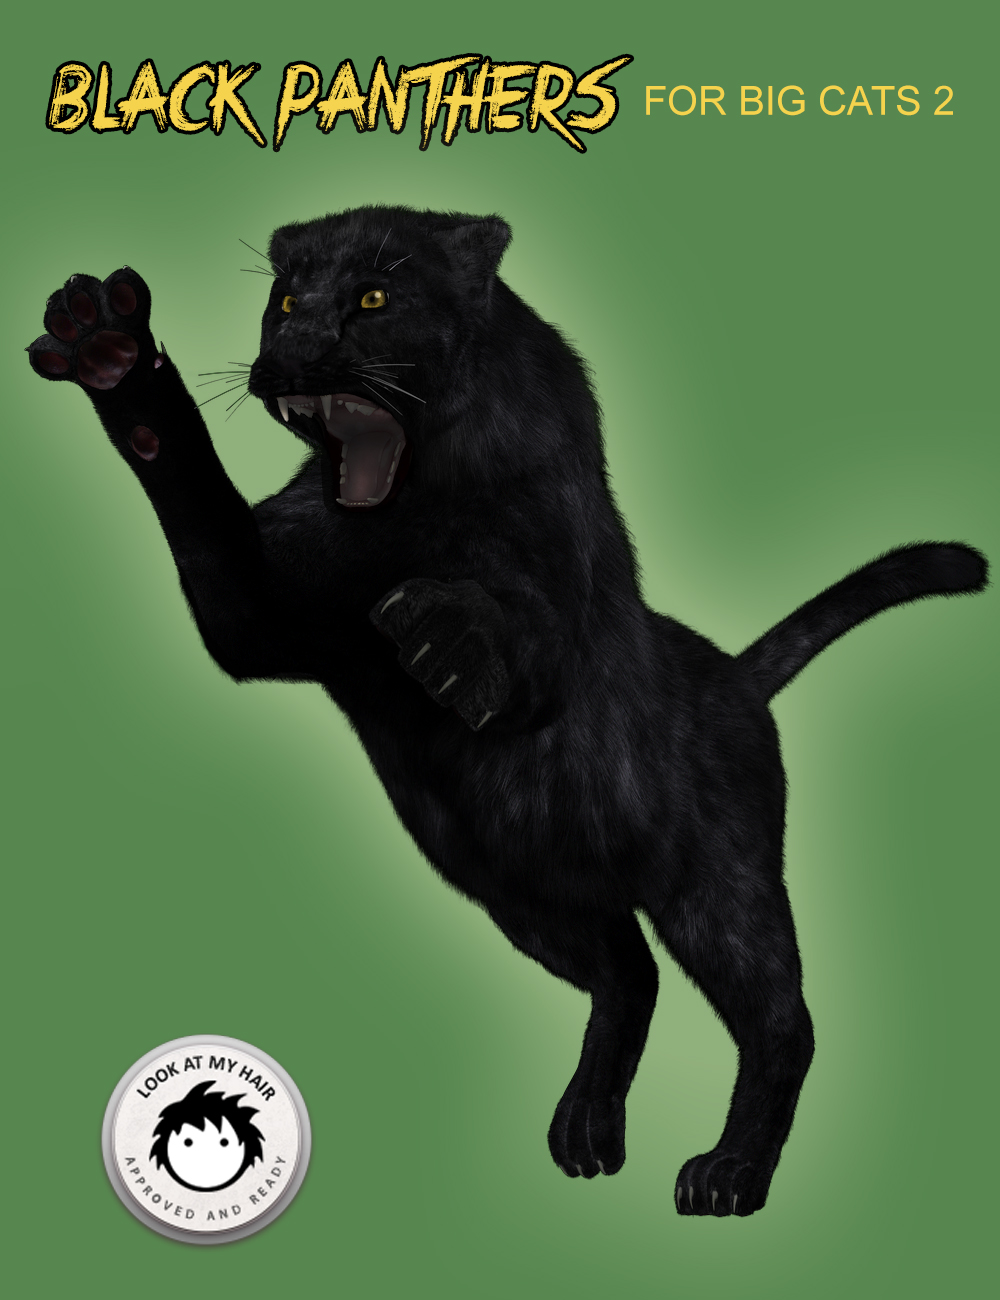 Black Panthers for DAZ Big Cat 2 by: Alessandro_AMKendall Sears, 3D Models by Daz 3D